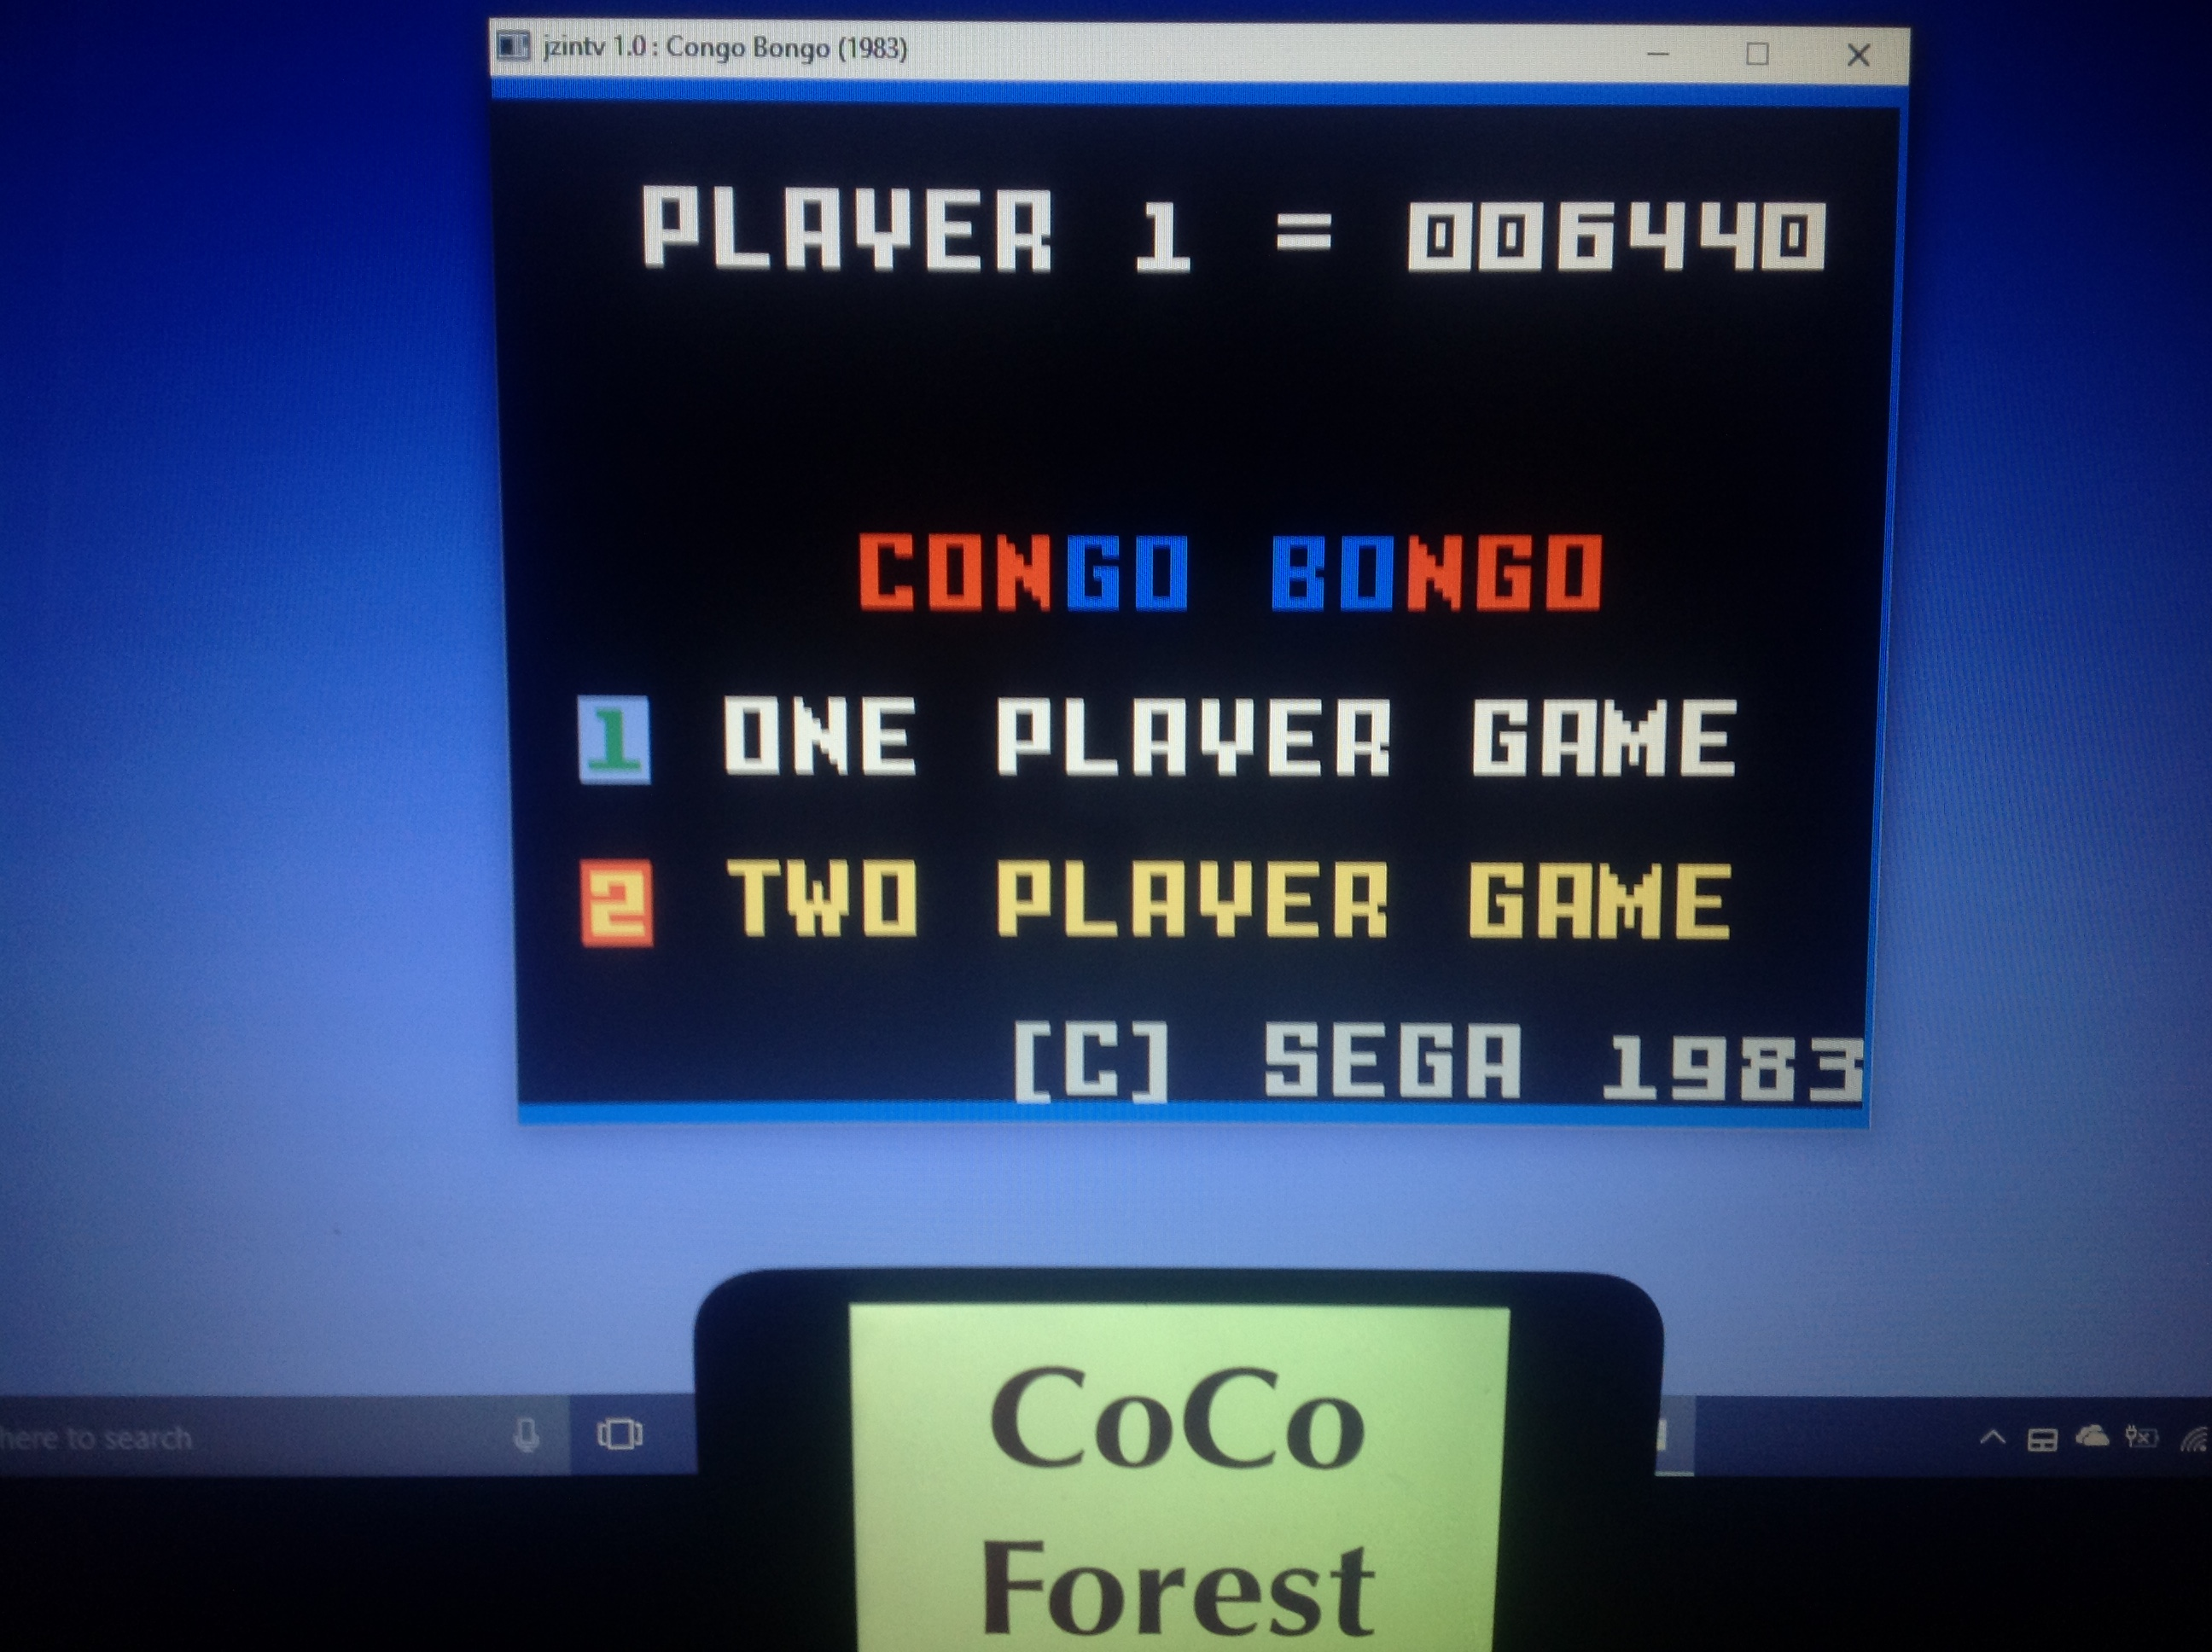 CoCoForest: Congo Bongo (Intellivision Emulated) 6,440 points on 2018-01-29 05:05:39